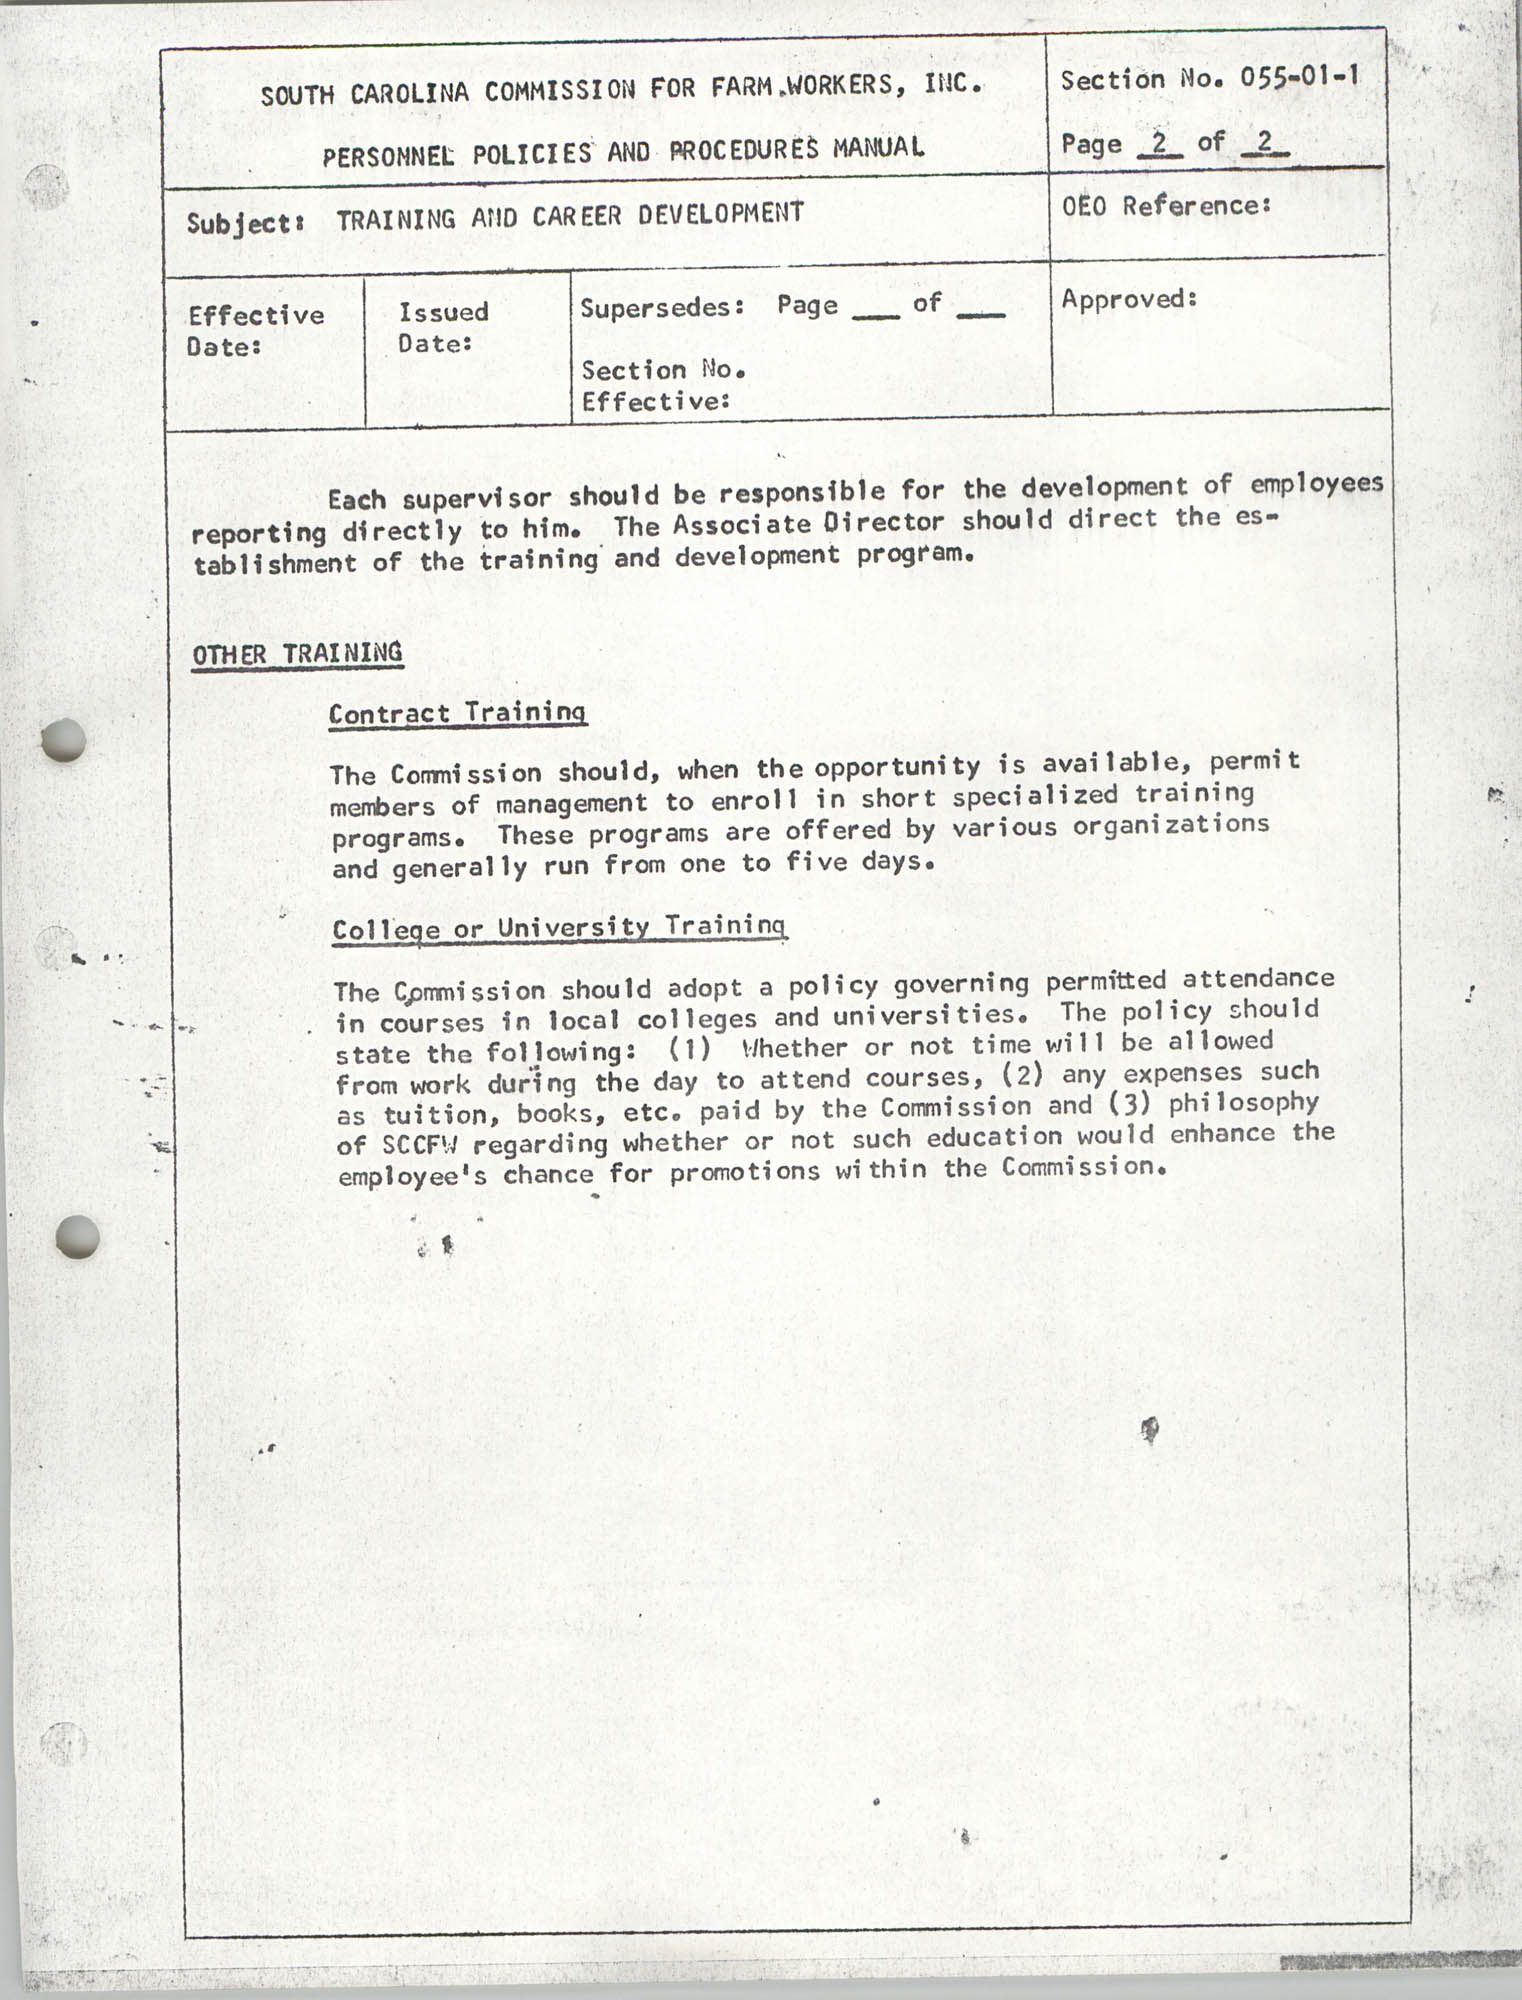 Personnel Policies and Procedures Manual, Section No. 055-01-1, Page 2